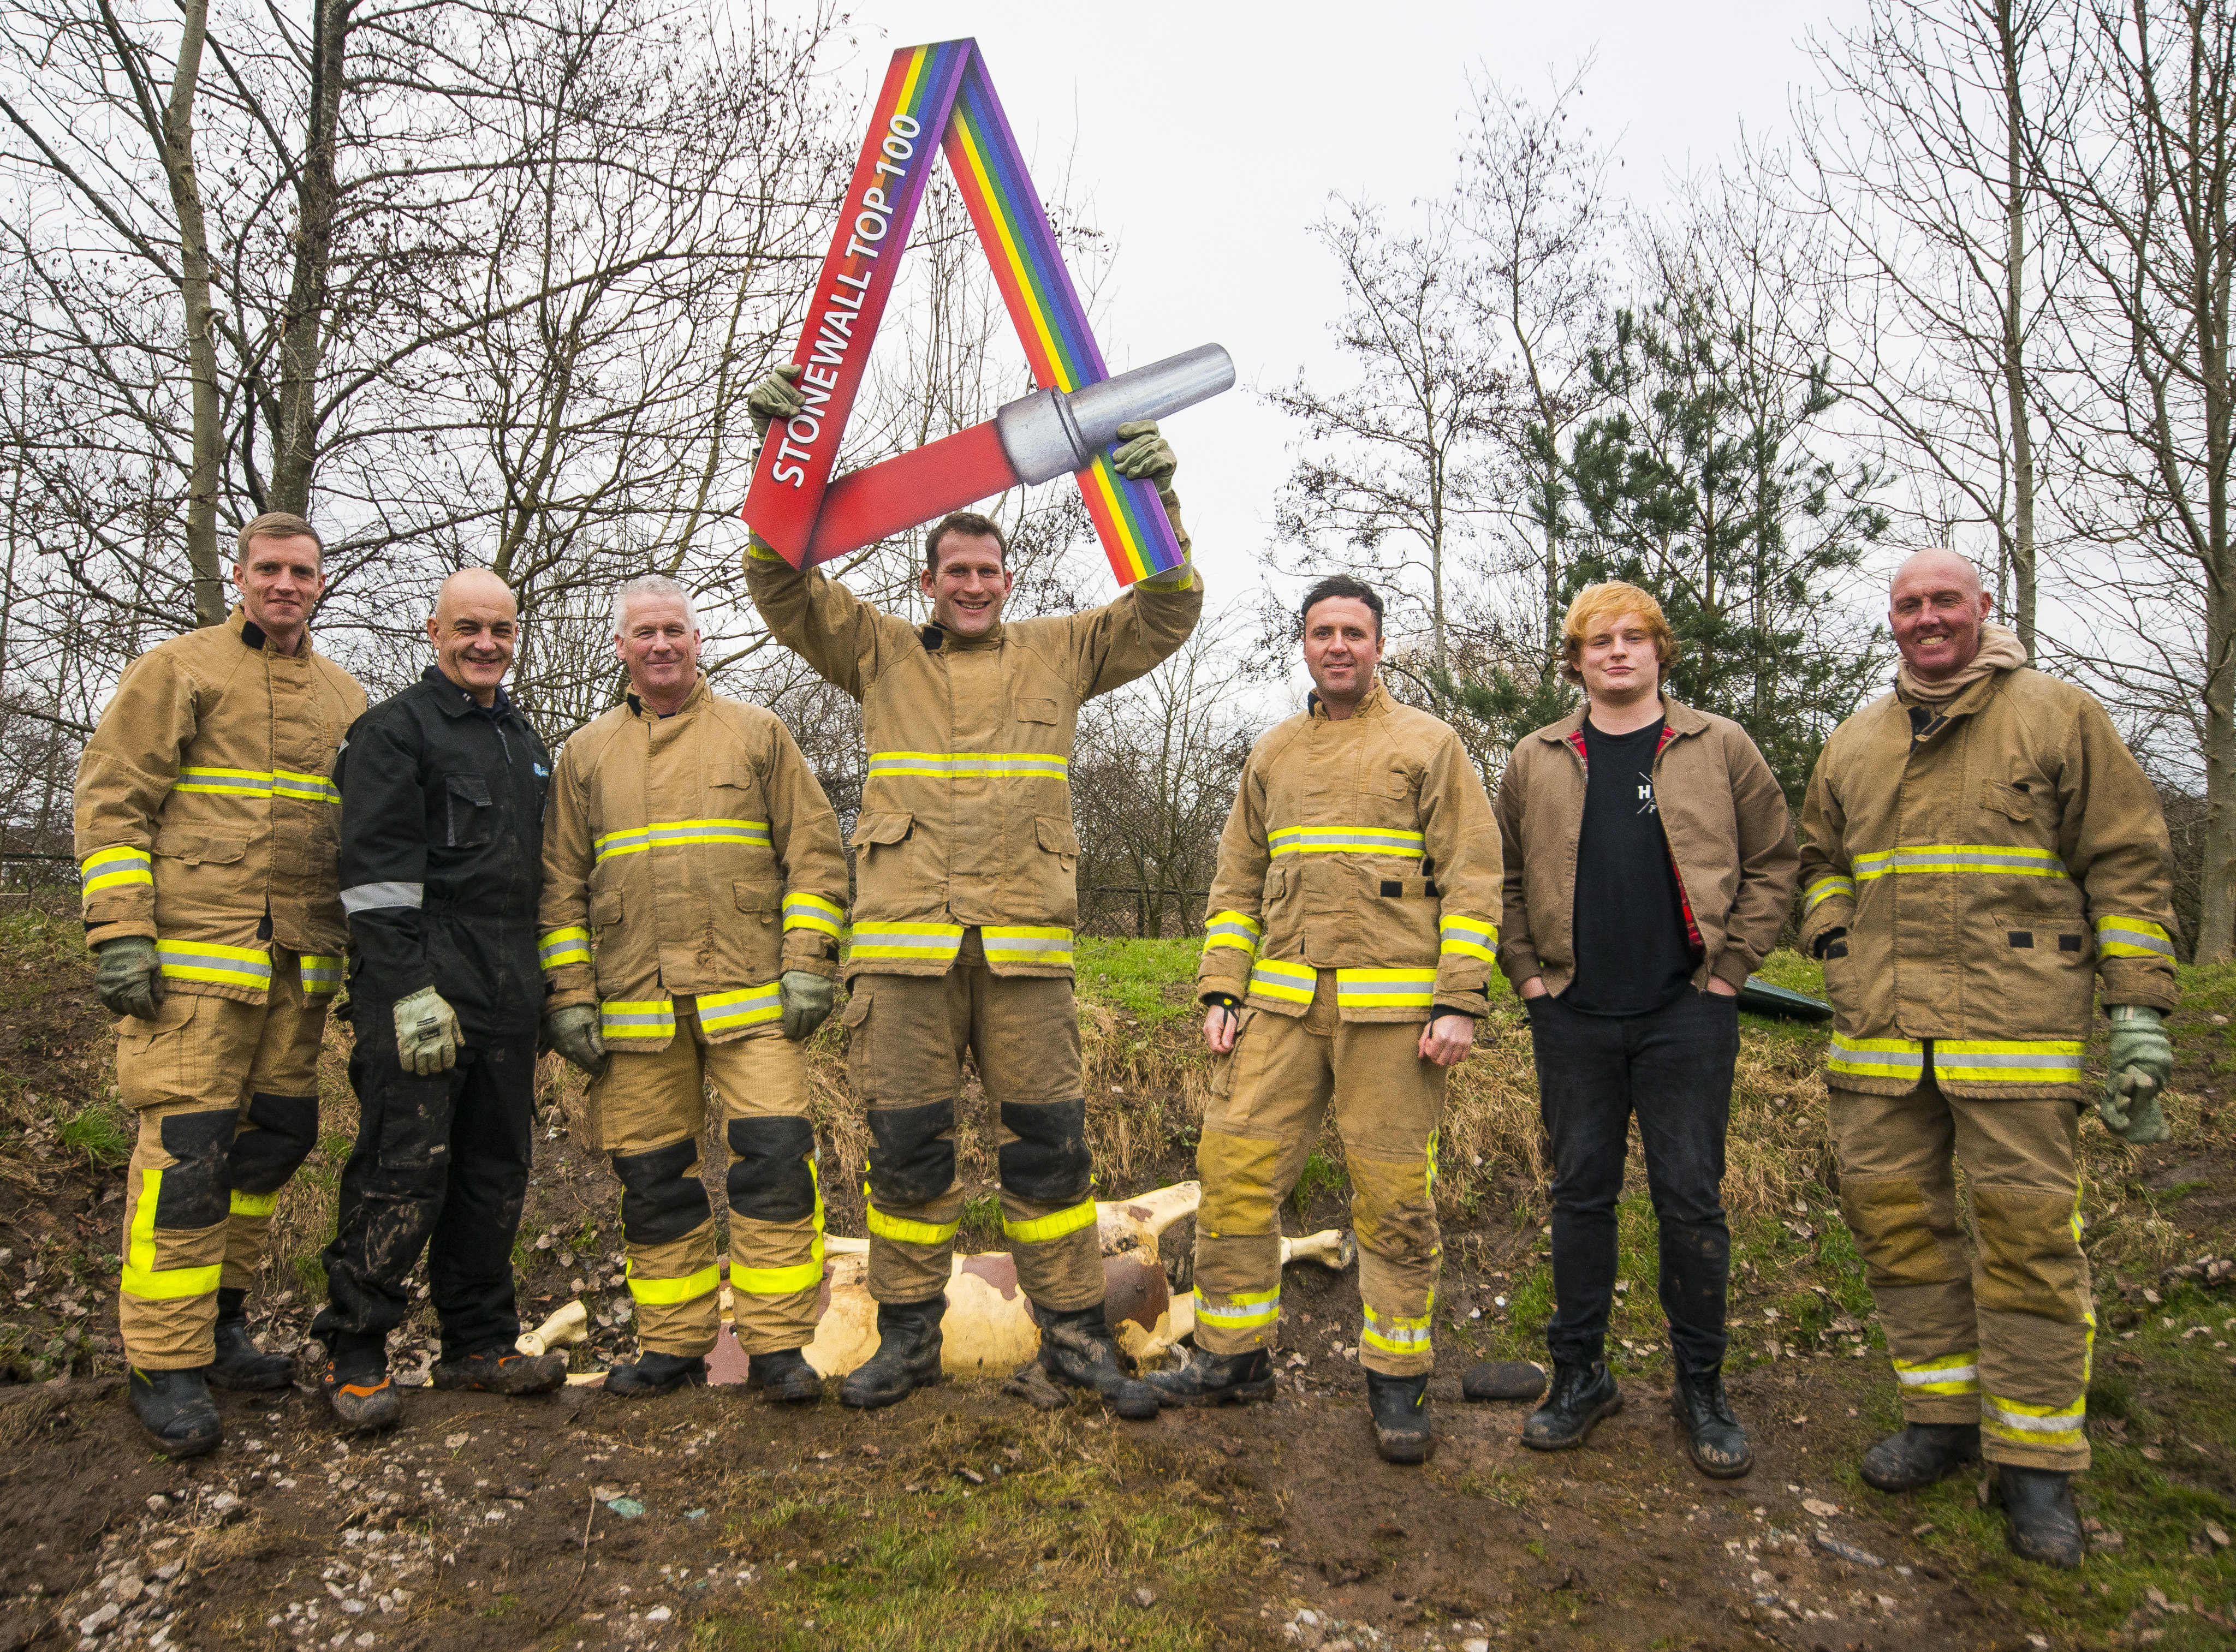 Emergency services shine as LGBT inclusive employers